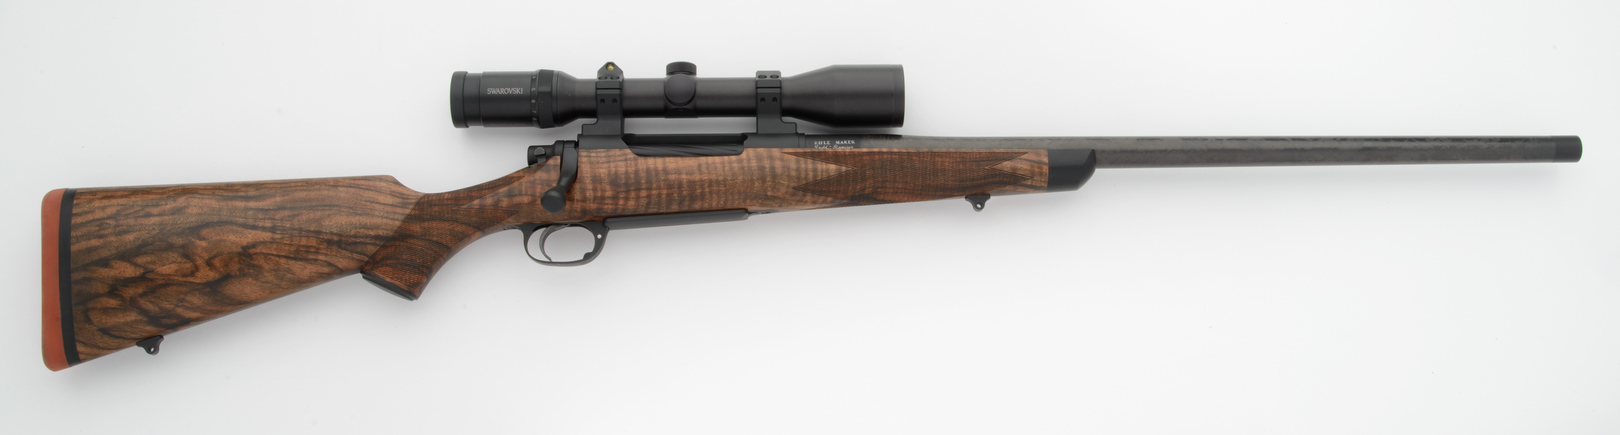 Avani Warrior Rifle Turkish Walnut Blank